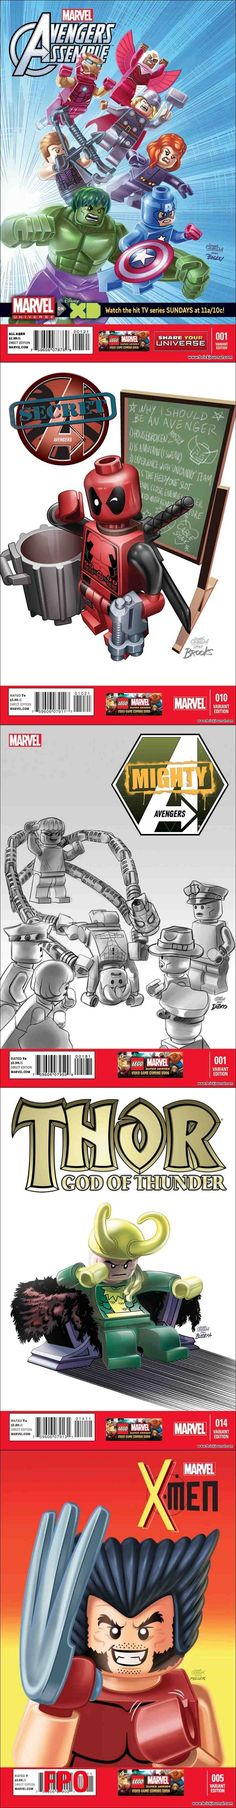 Marvel releases a set of variant covers to celebrate the New LEGO Marvel Super Heroes video game.